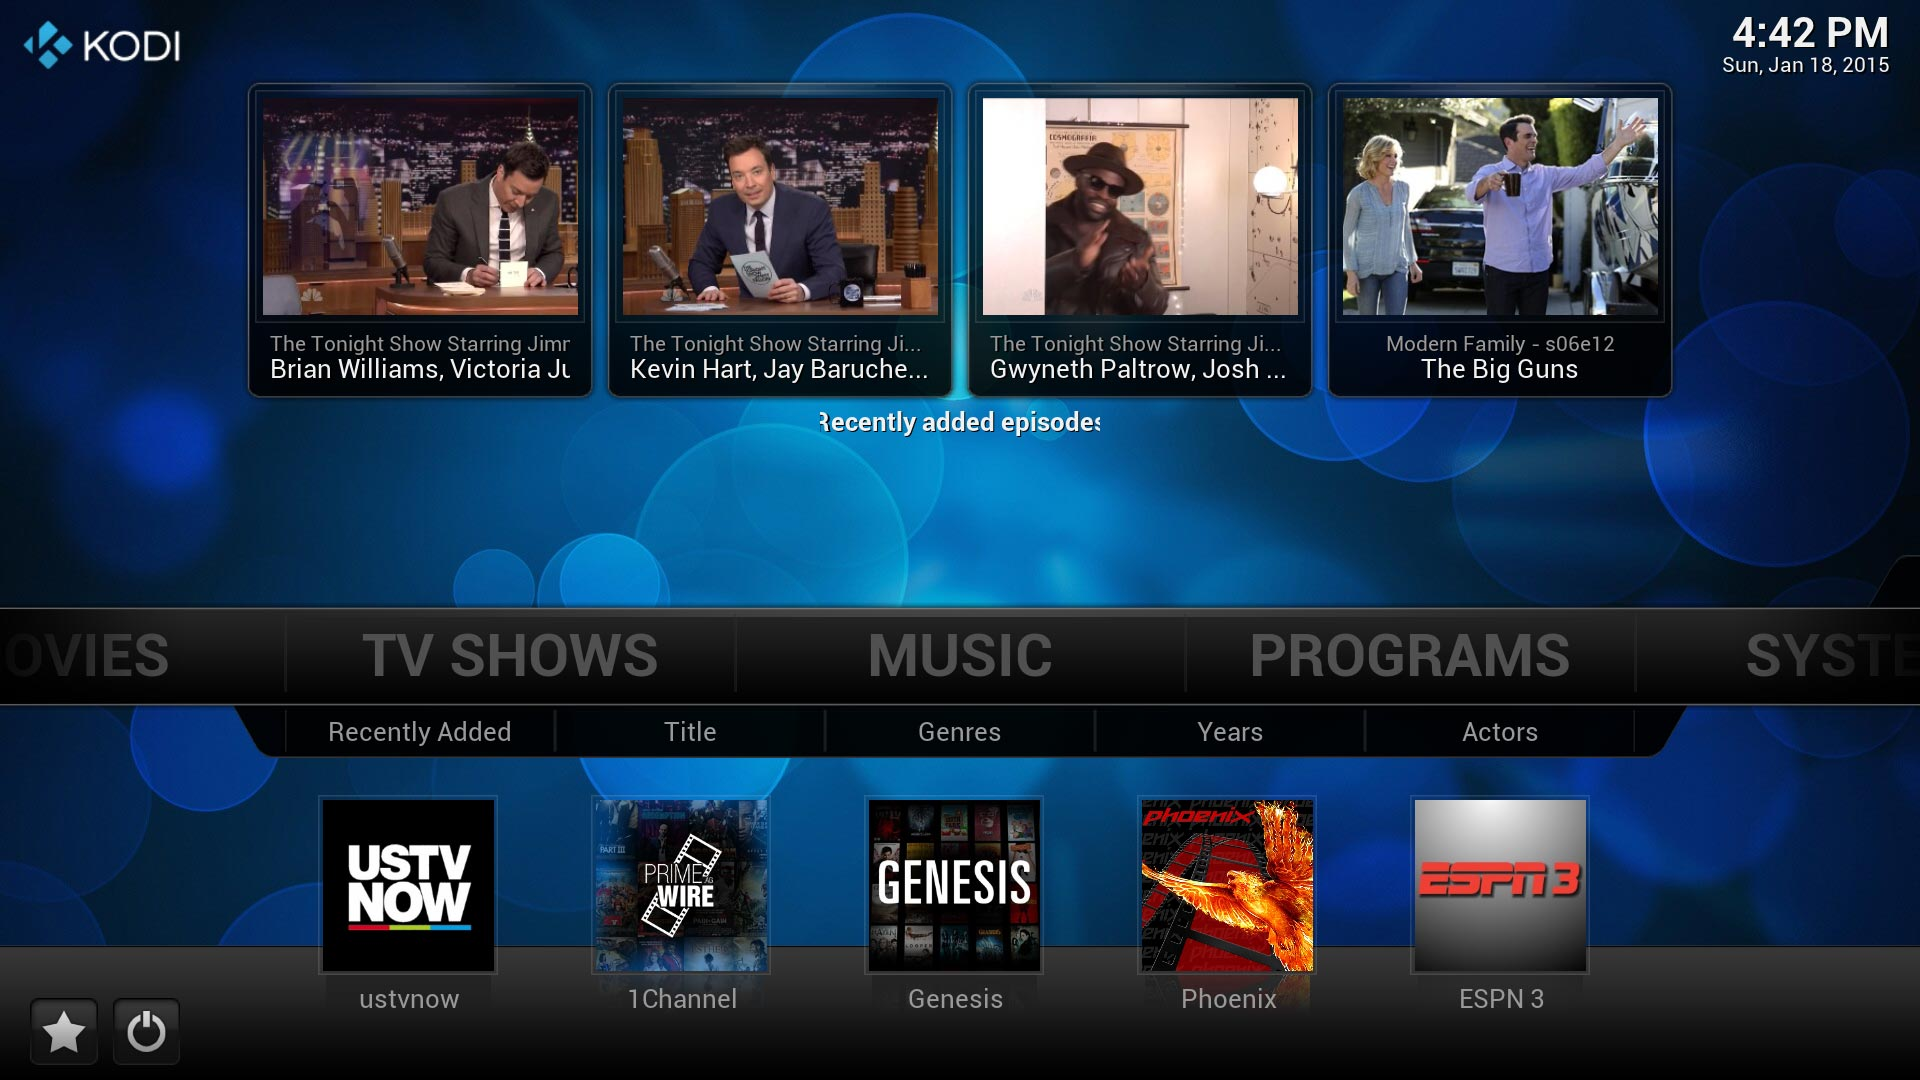 How to download movies on kodi legally and safely | comparitech.